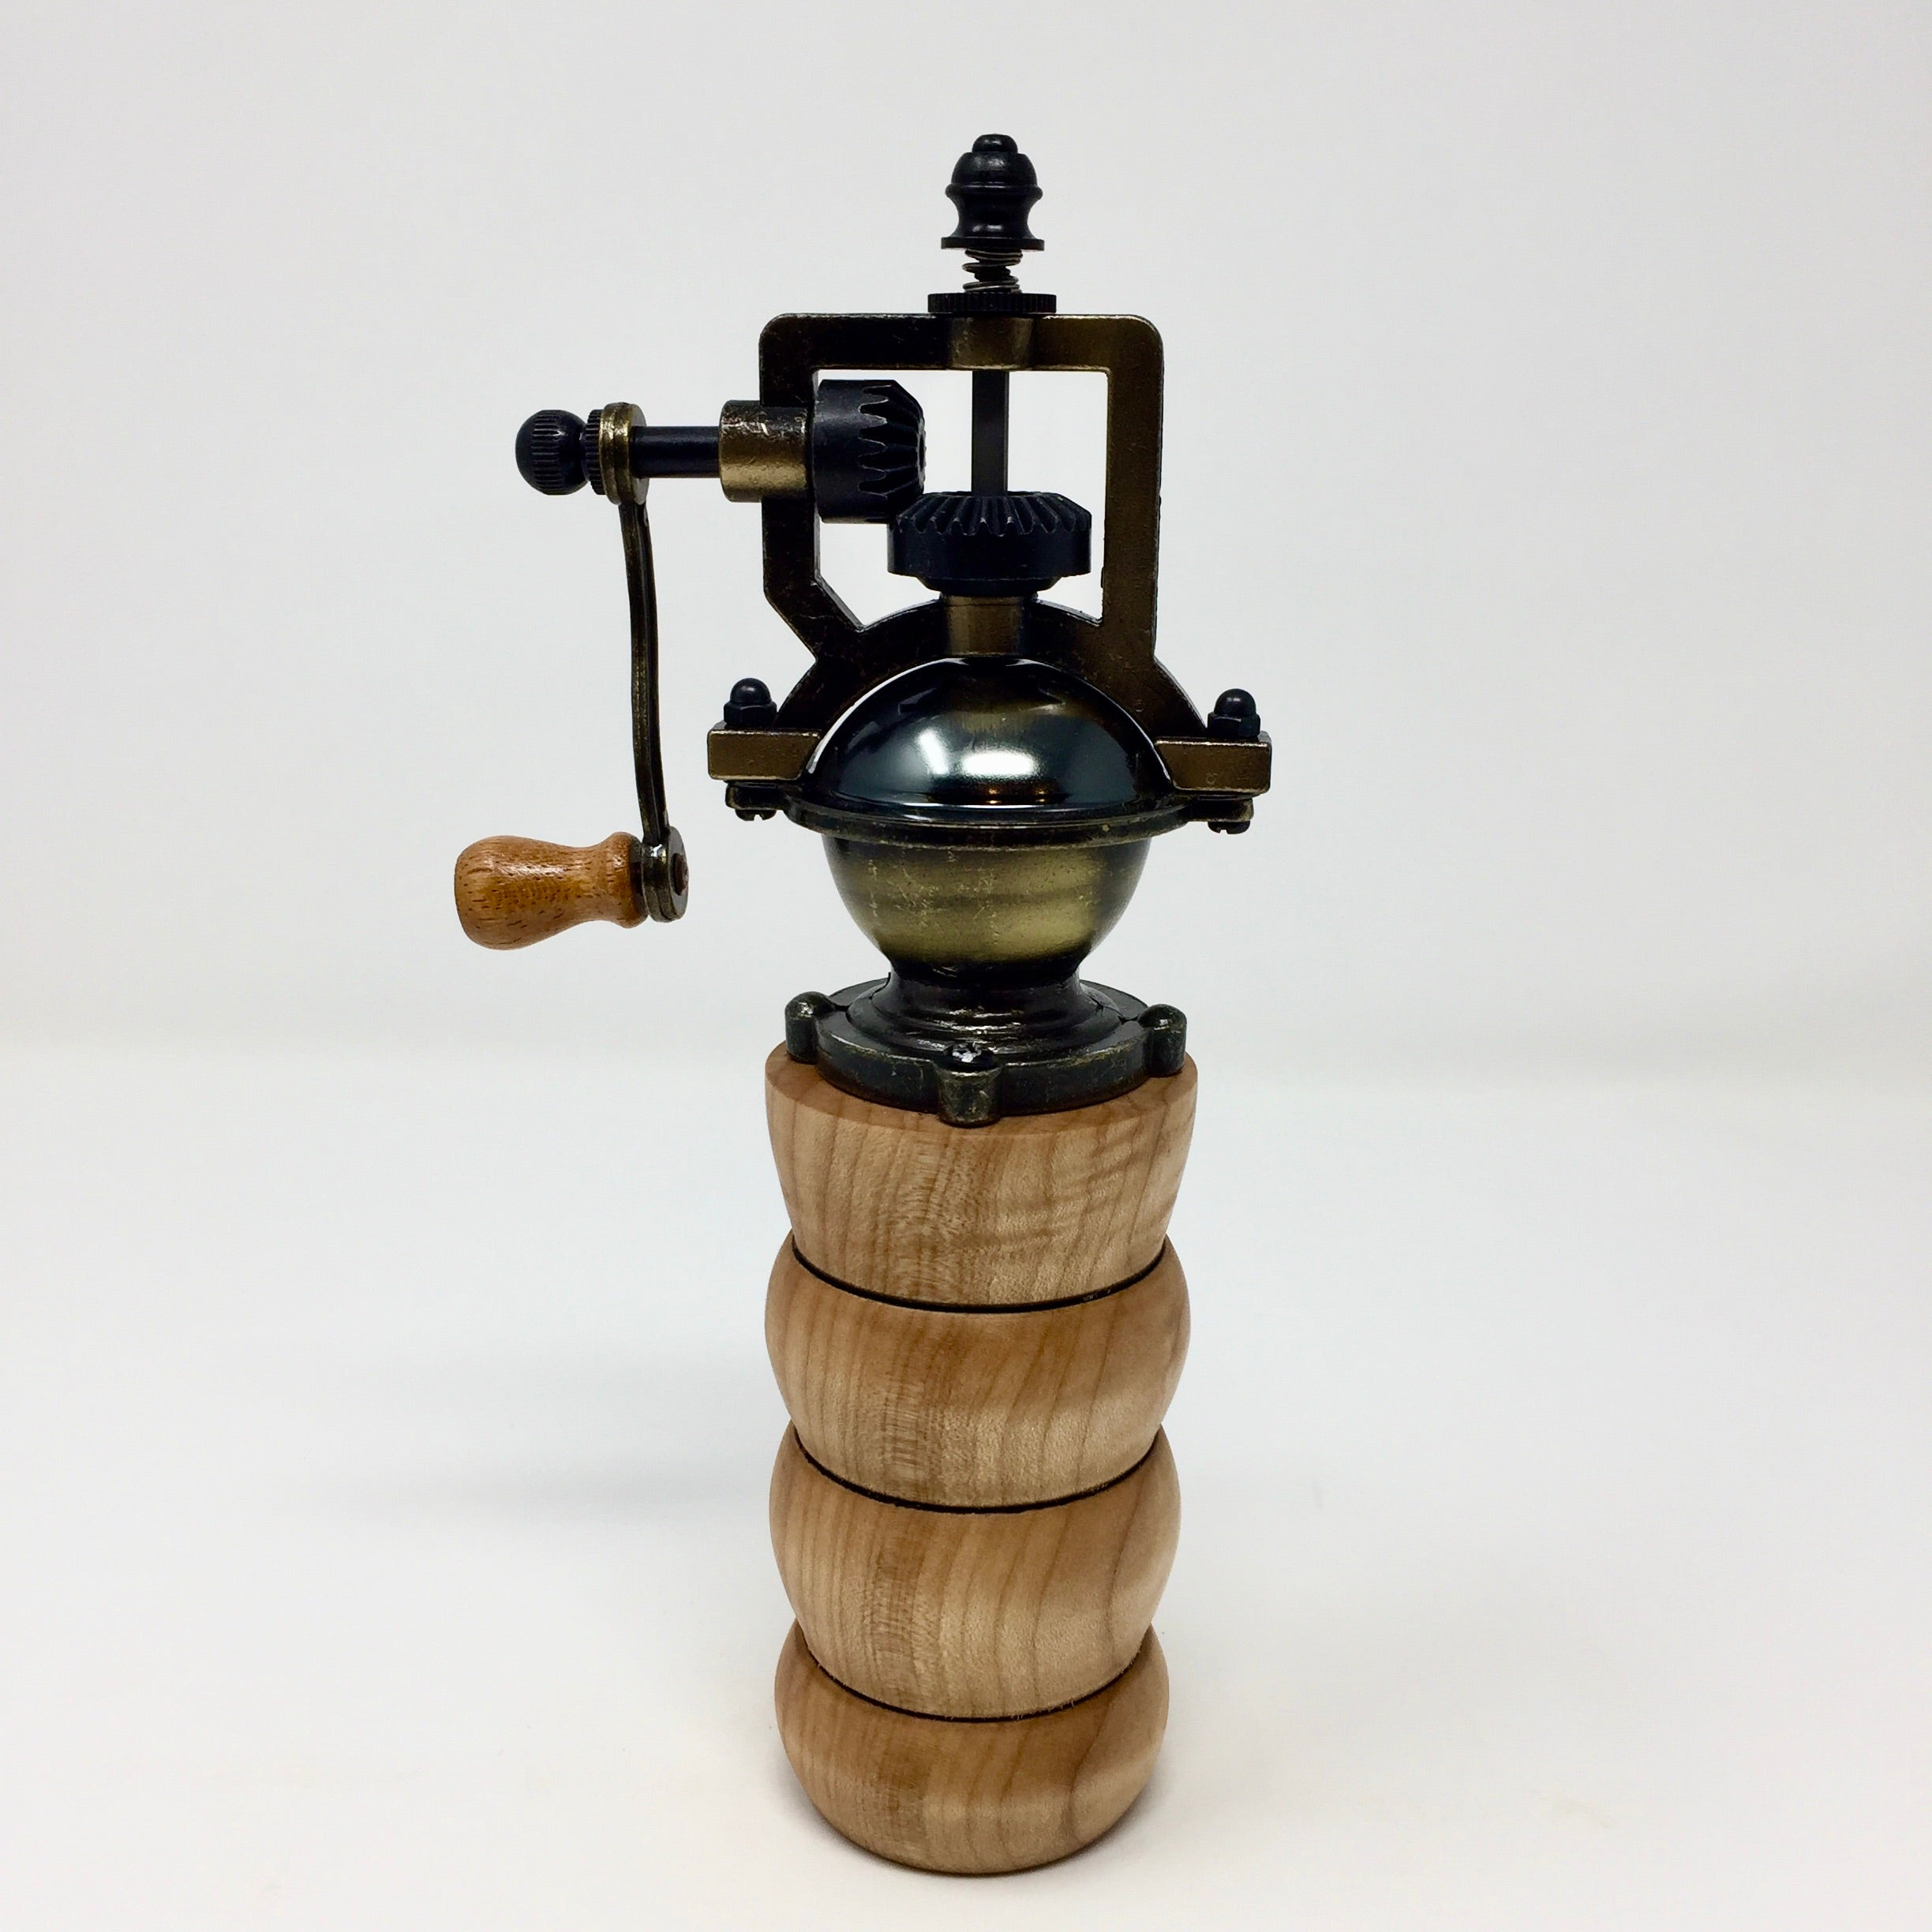 Bronze Antique-style Pepper Grinder in Maple